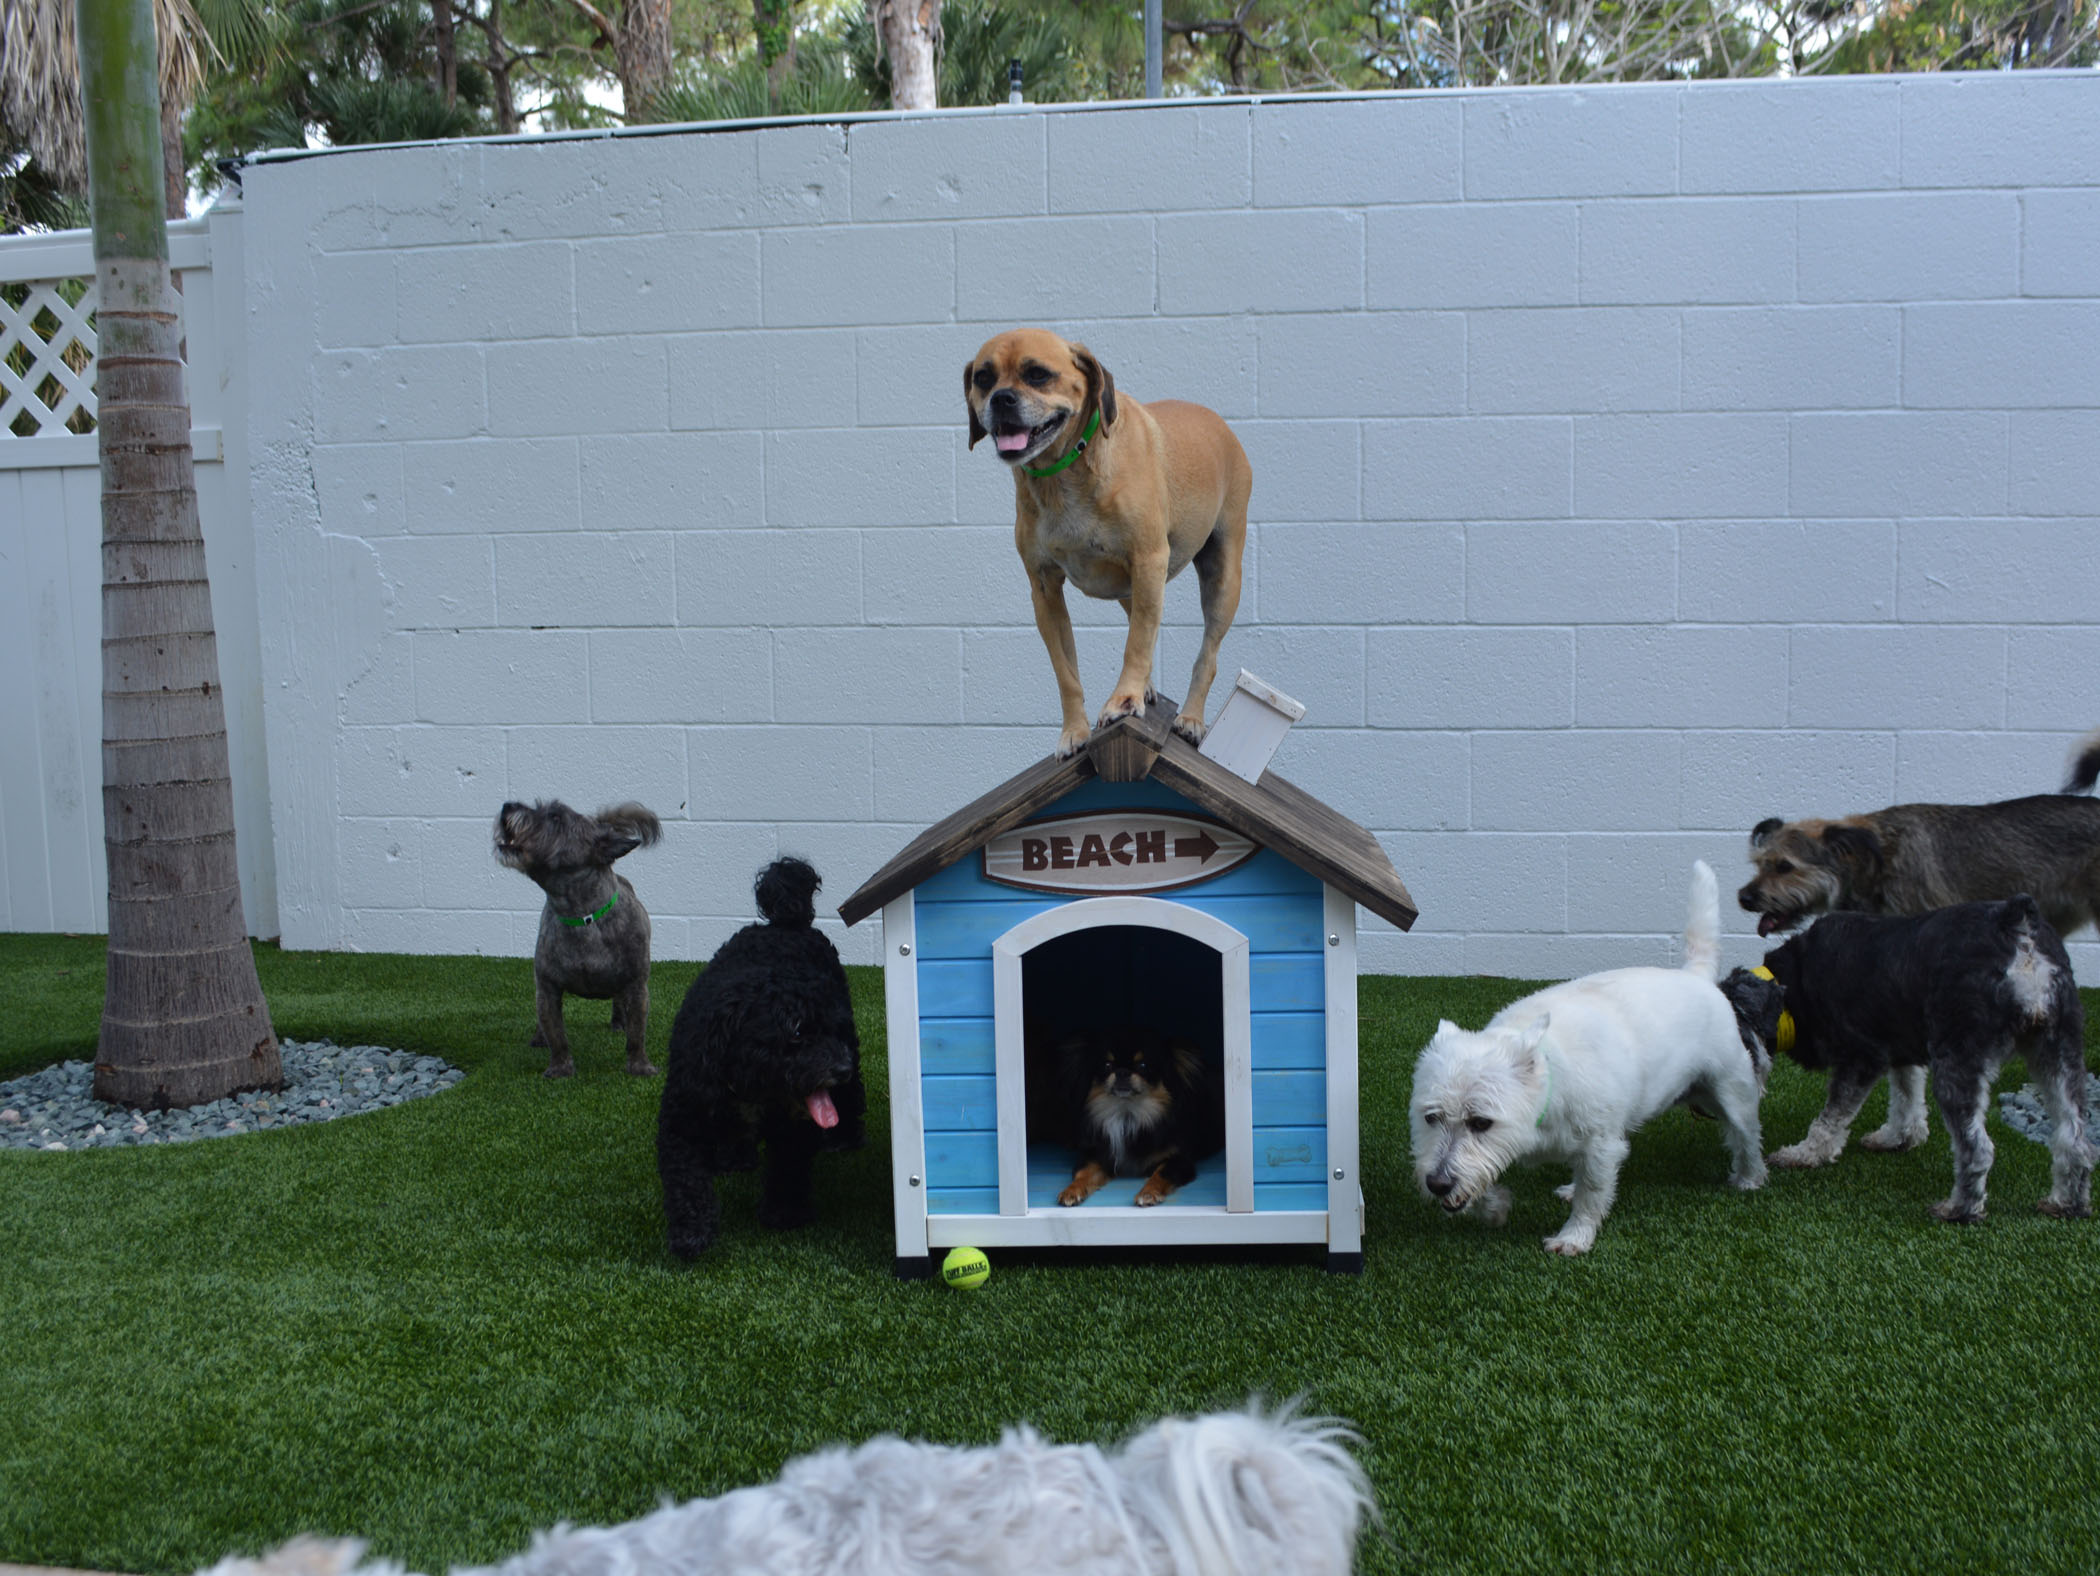 Hotel For Dogs with Artificial Grass for Dogs, Altadena, California